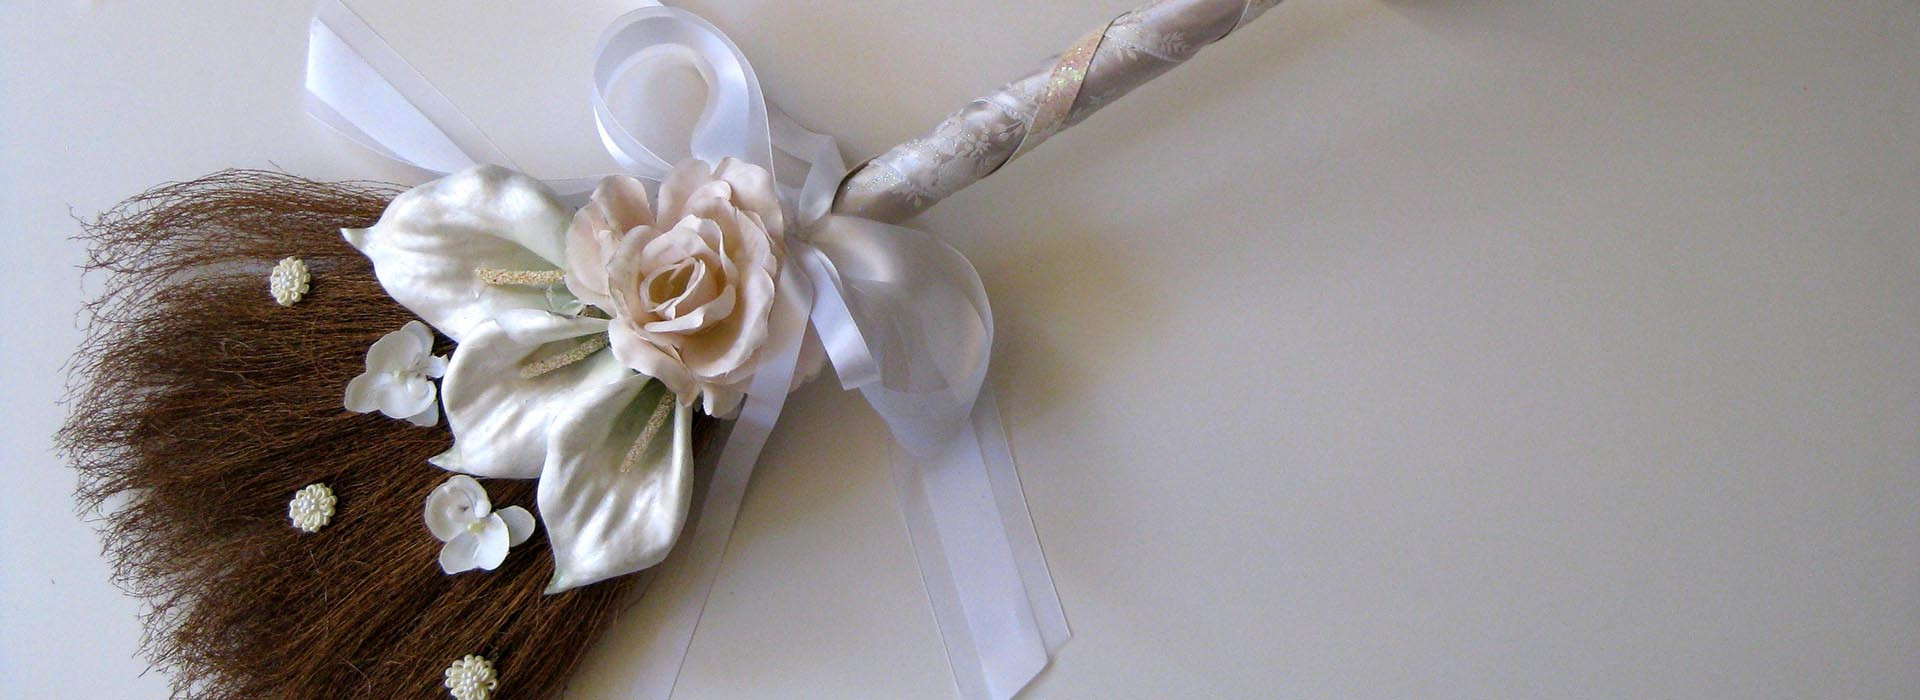 Wedding Brooms The Perfect Wedding Accessory For Jump The Broom